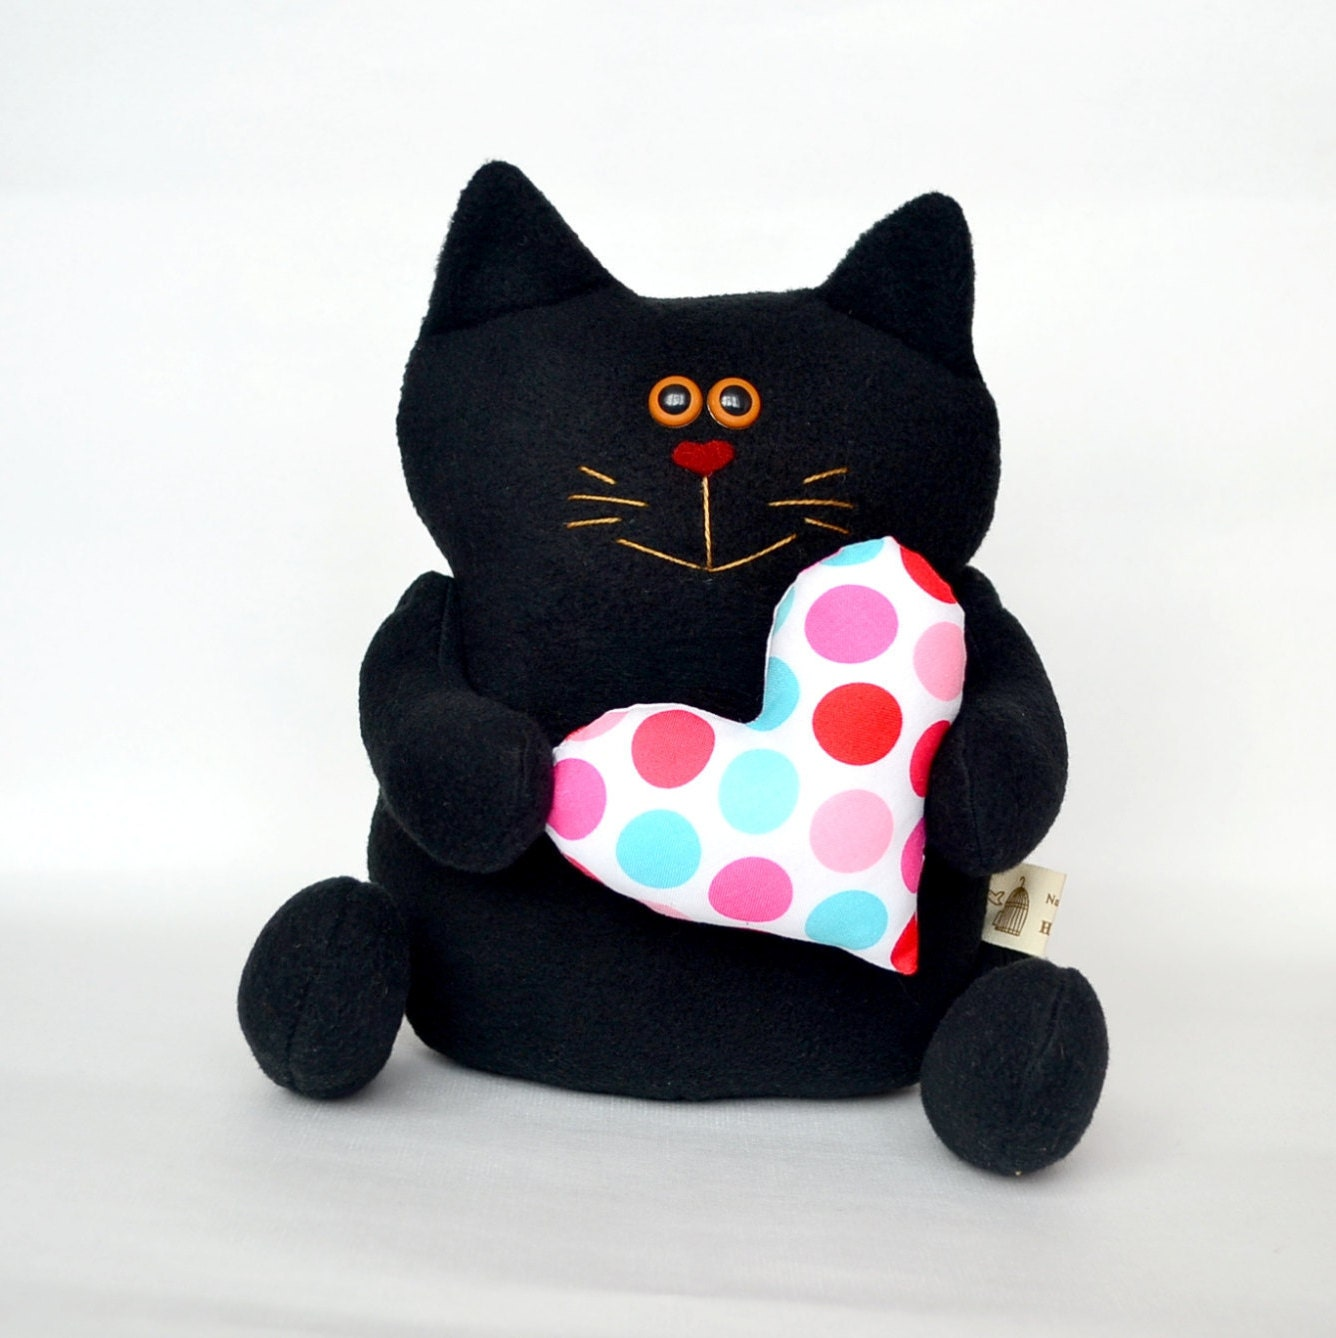 black cat stuffed animals cat with heart by luckytoysstudio. Black Bedroom Furniture Sets. Home Design Ideas